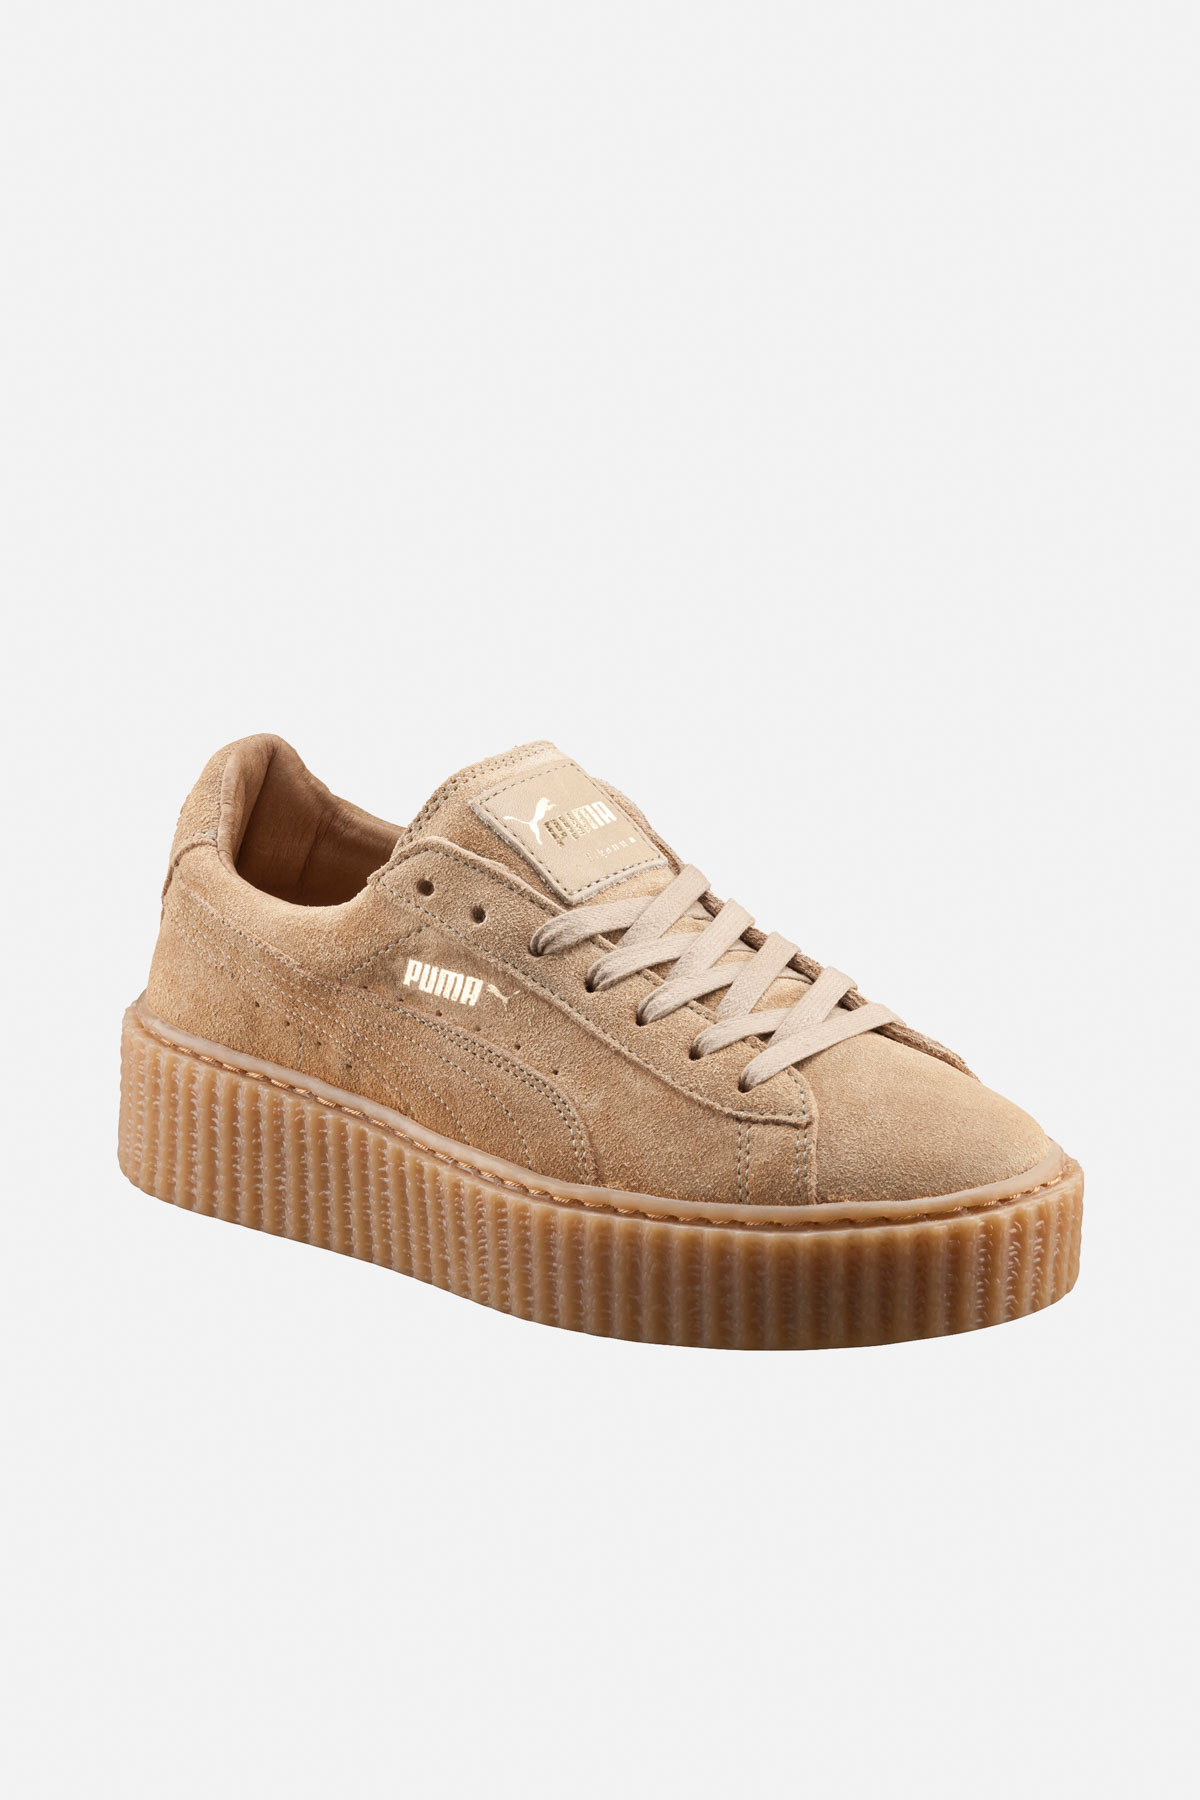 puma by rihanna suede creepers shop puma by rihanna opening ceremony. Black Bedroom Furniture Sets. Home Design Ideas